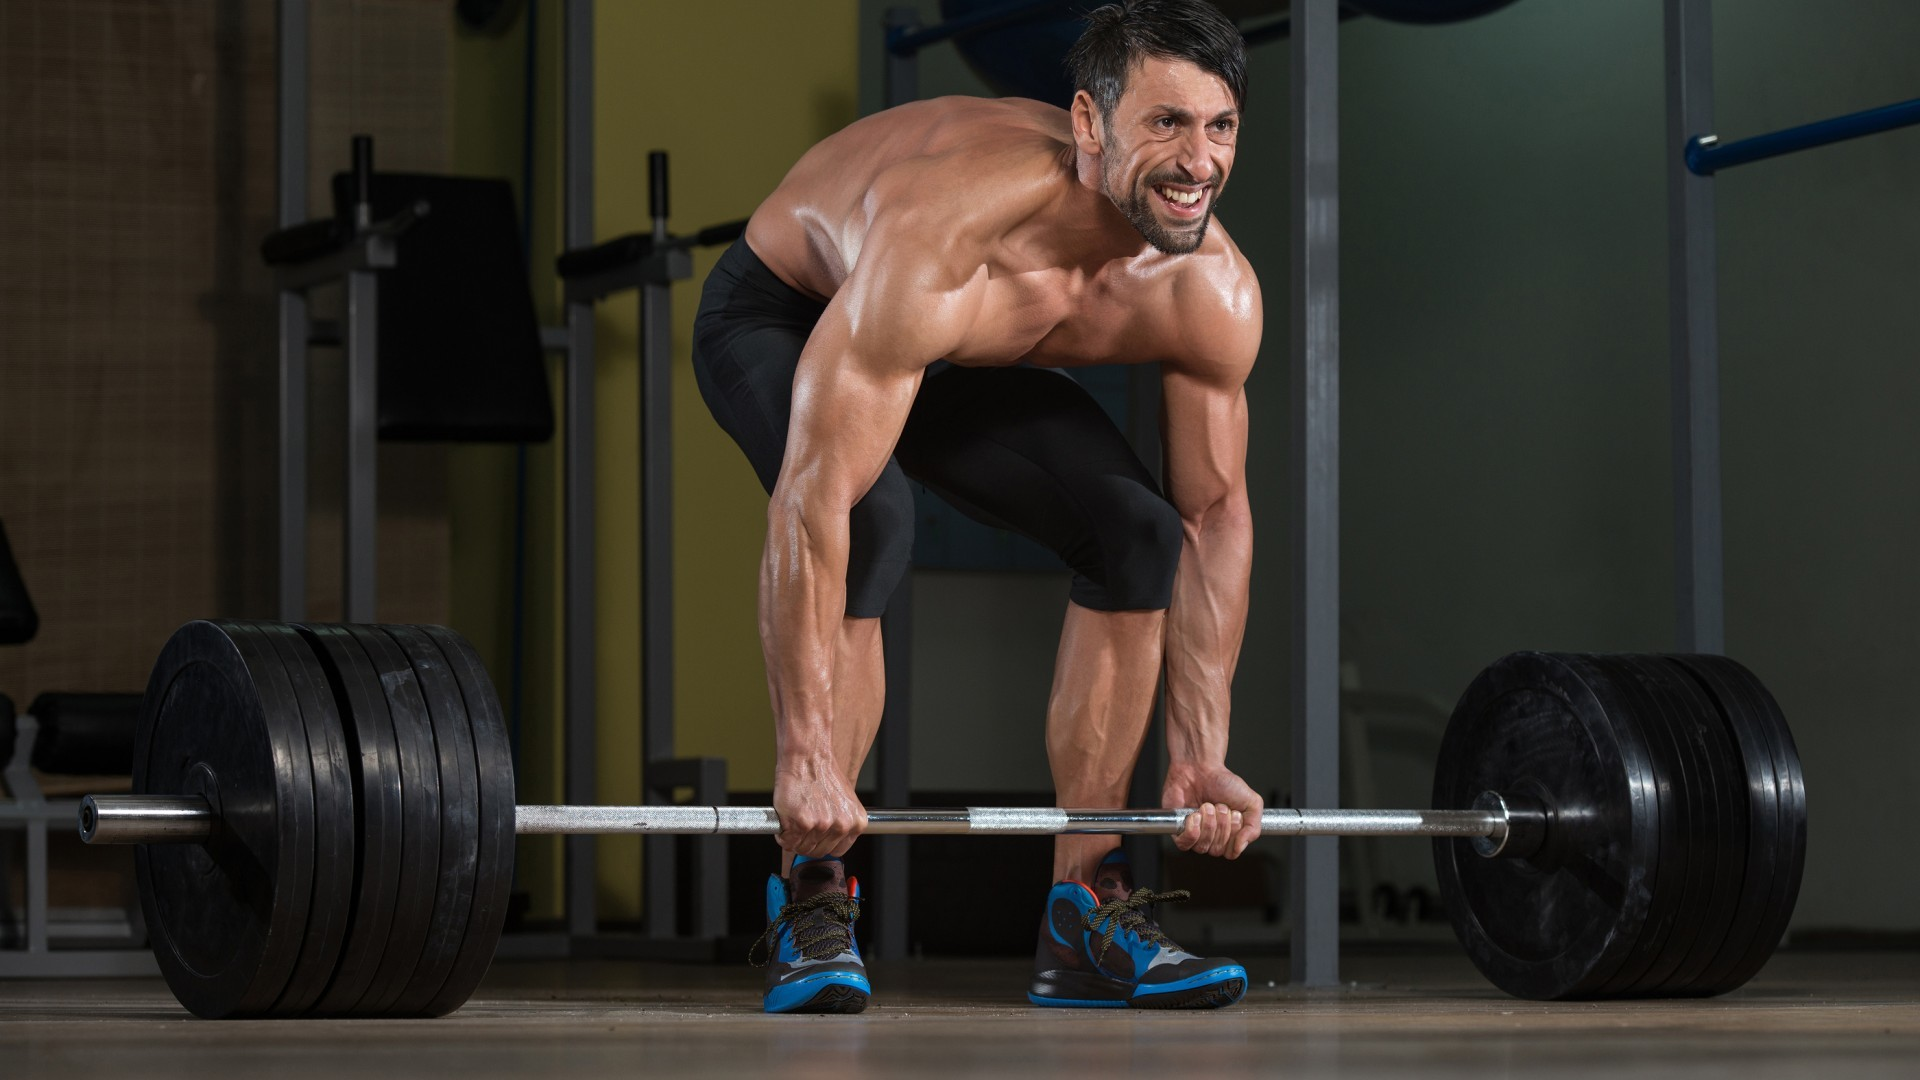 men models gym workout fitness weight lifting in zoom